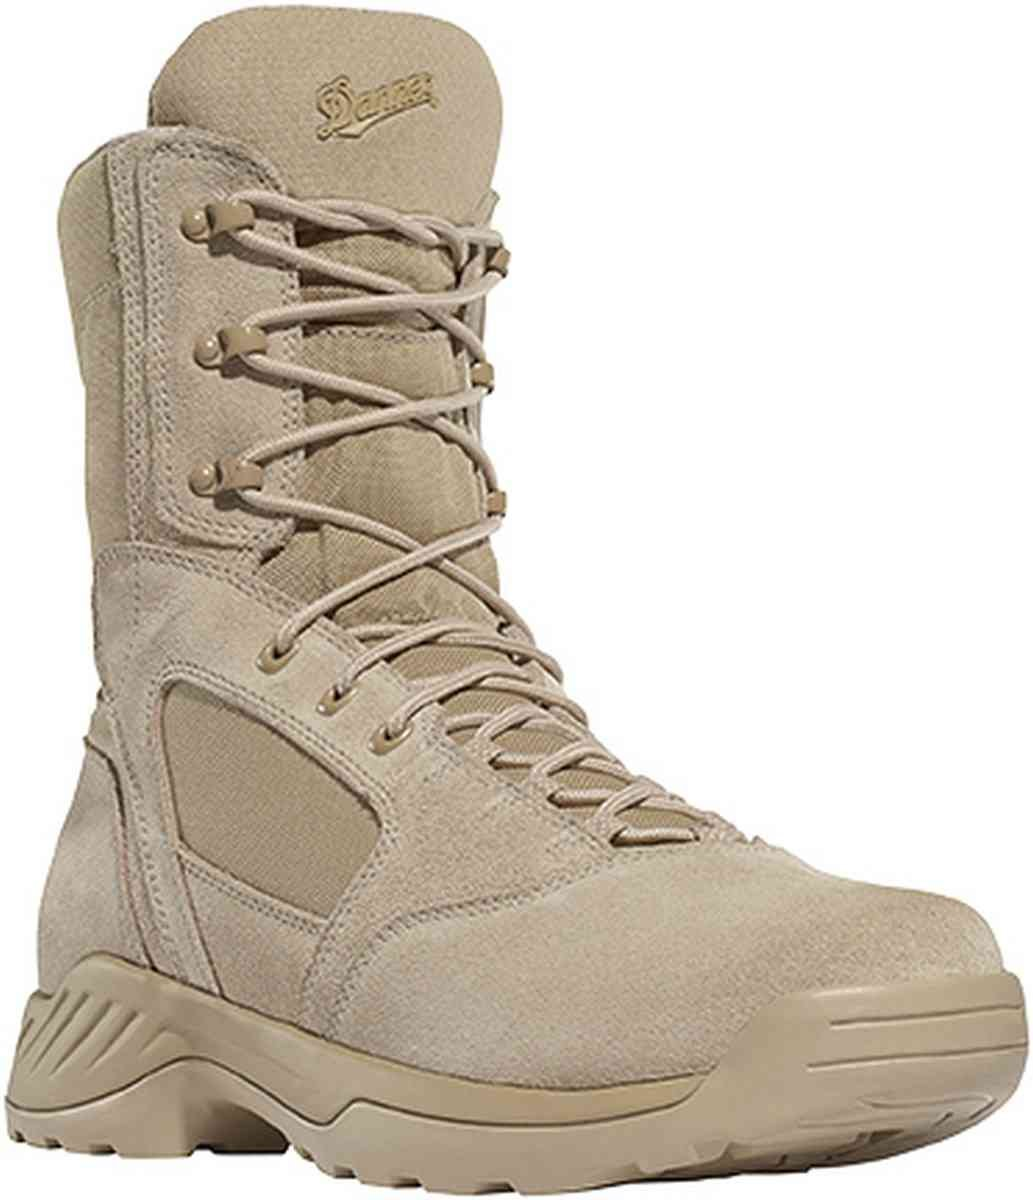 Danner And Lacrosse Military Hunting And Work Boots Are